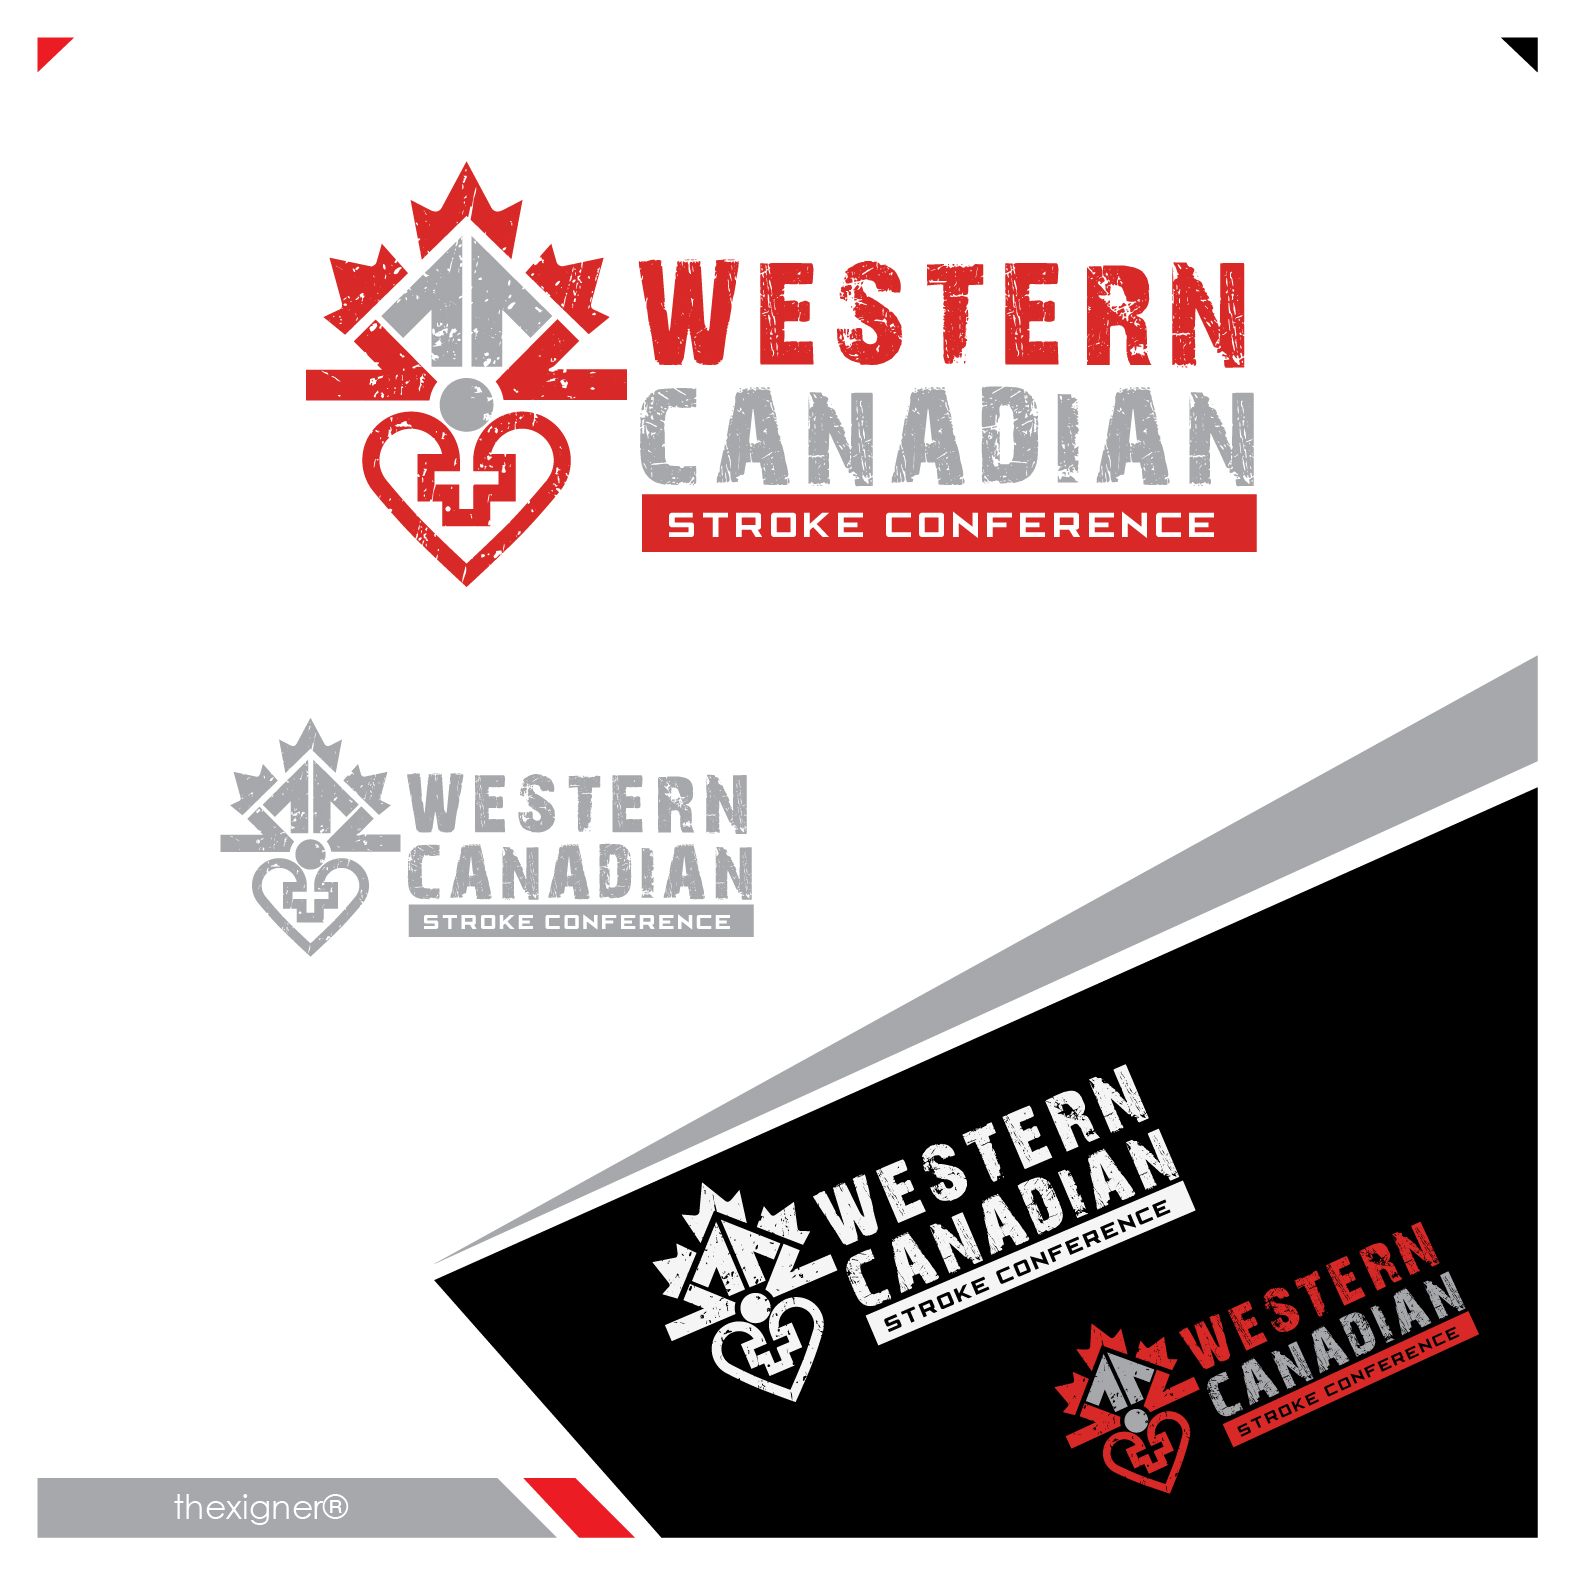 Logo Design by lagalag - Entry No. 35 in the Logo Design Contest Artistic Logo Design for Western Canadian Stroke Conference.